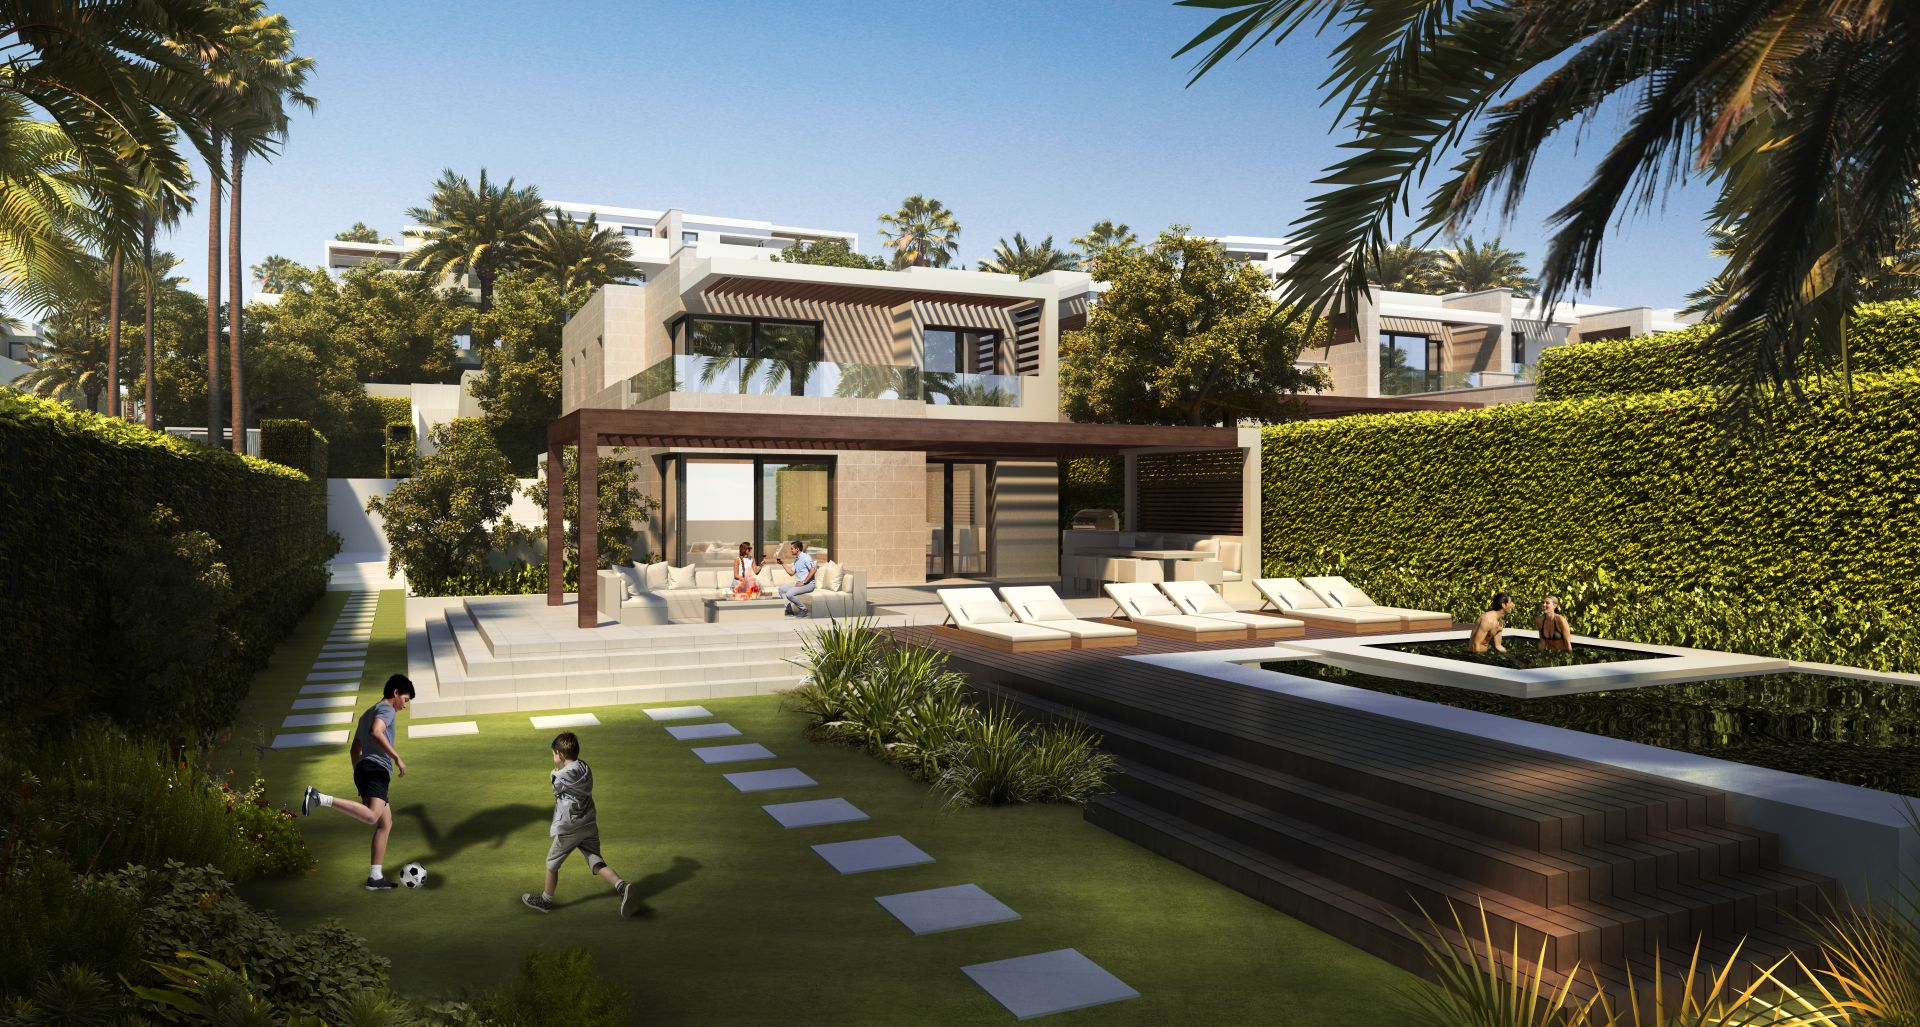 New off plan project of apartments and penthouses in Estepona